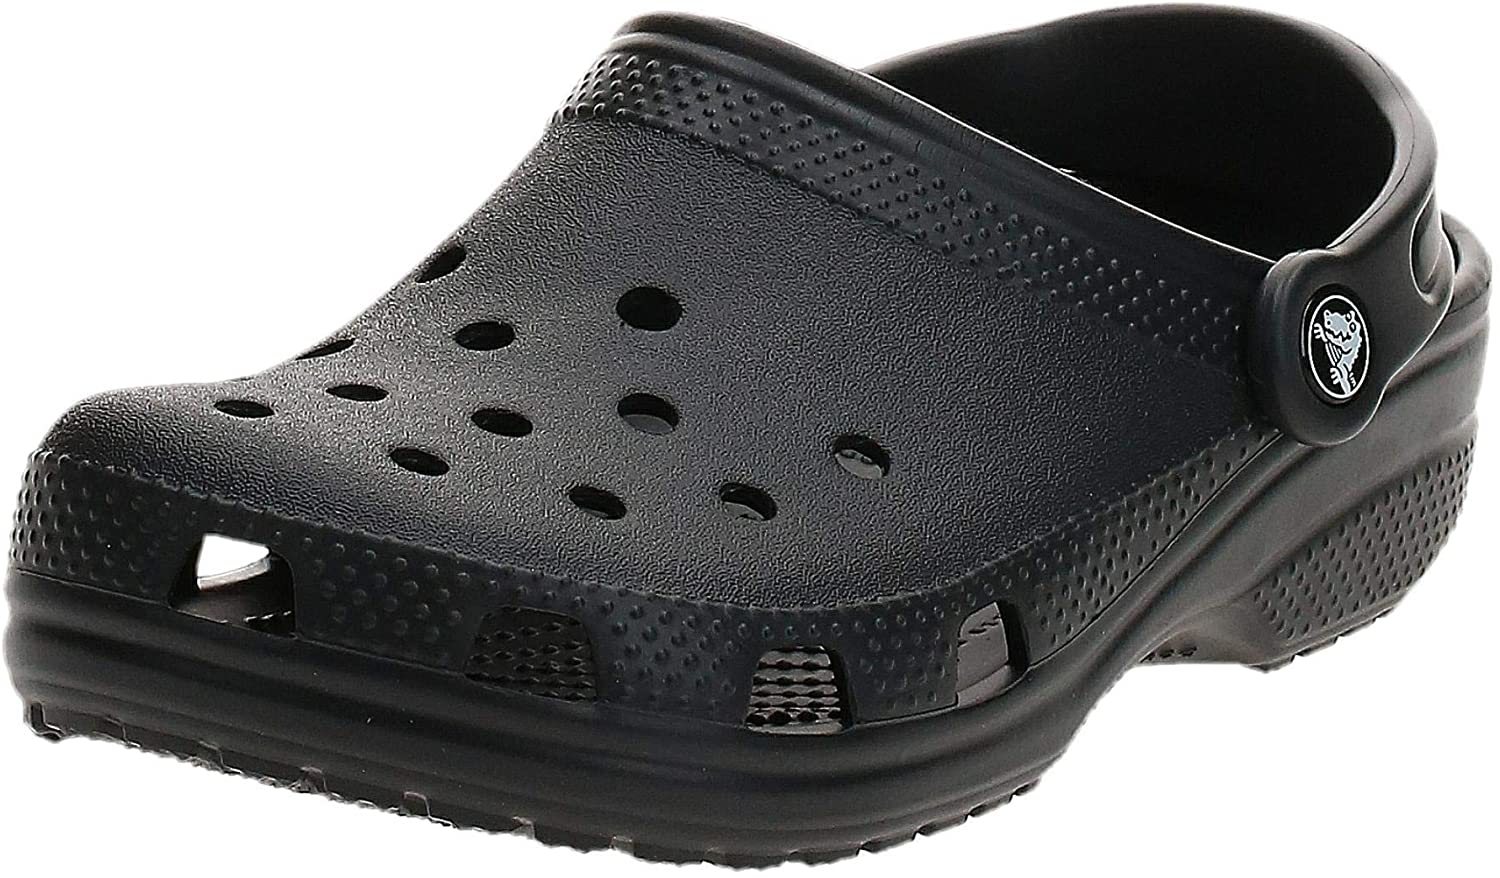 | Crocs Unisex-Adult Classic Clog | Water Shoes | Comfortable Slip On Shoes | Mules & Clogs